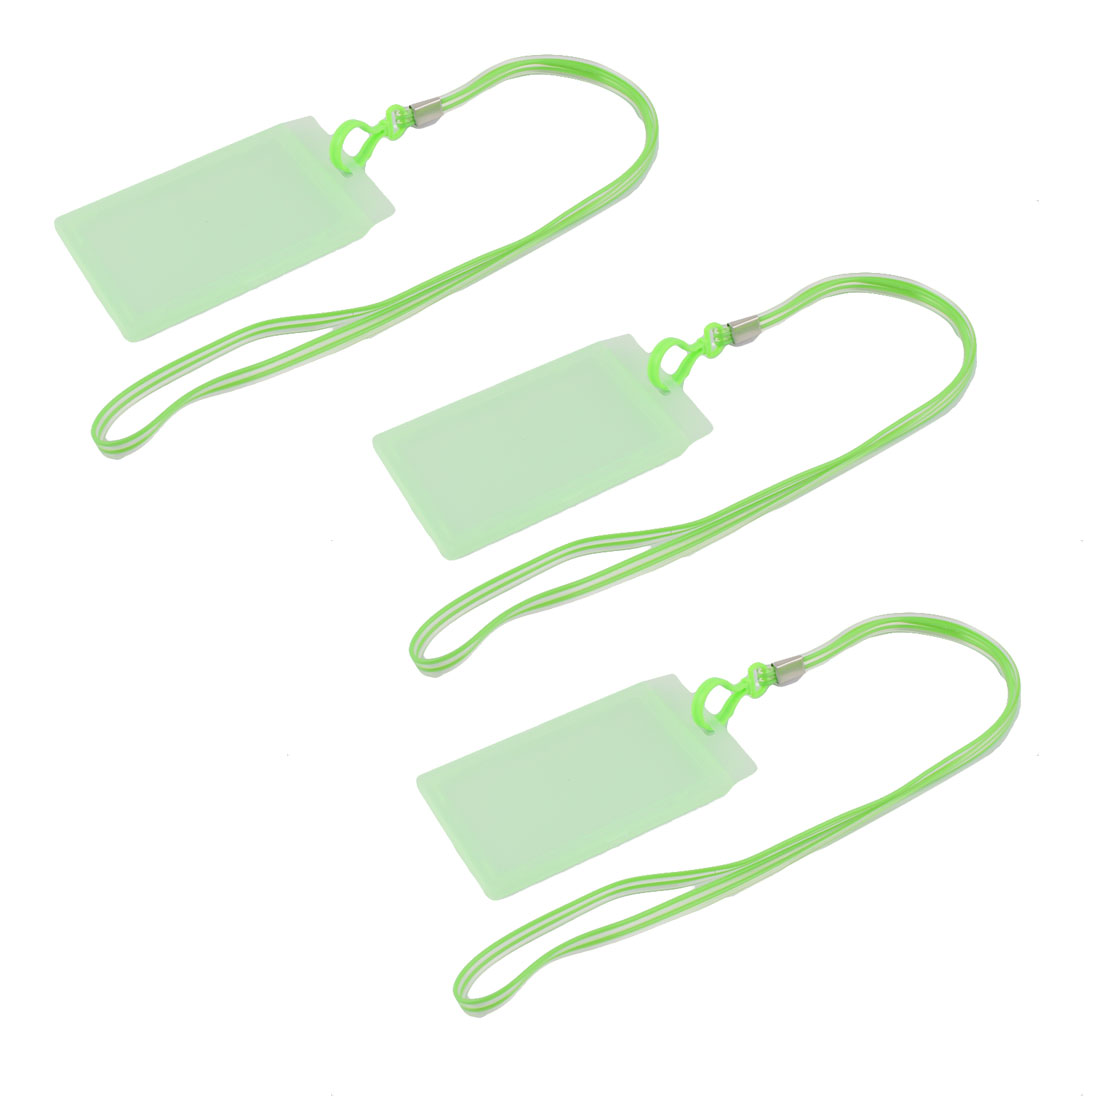 Plastic Vertical Style Lanyard Neck Strap Business Work ID Card Holder Green 3 Pcs